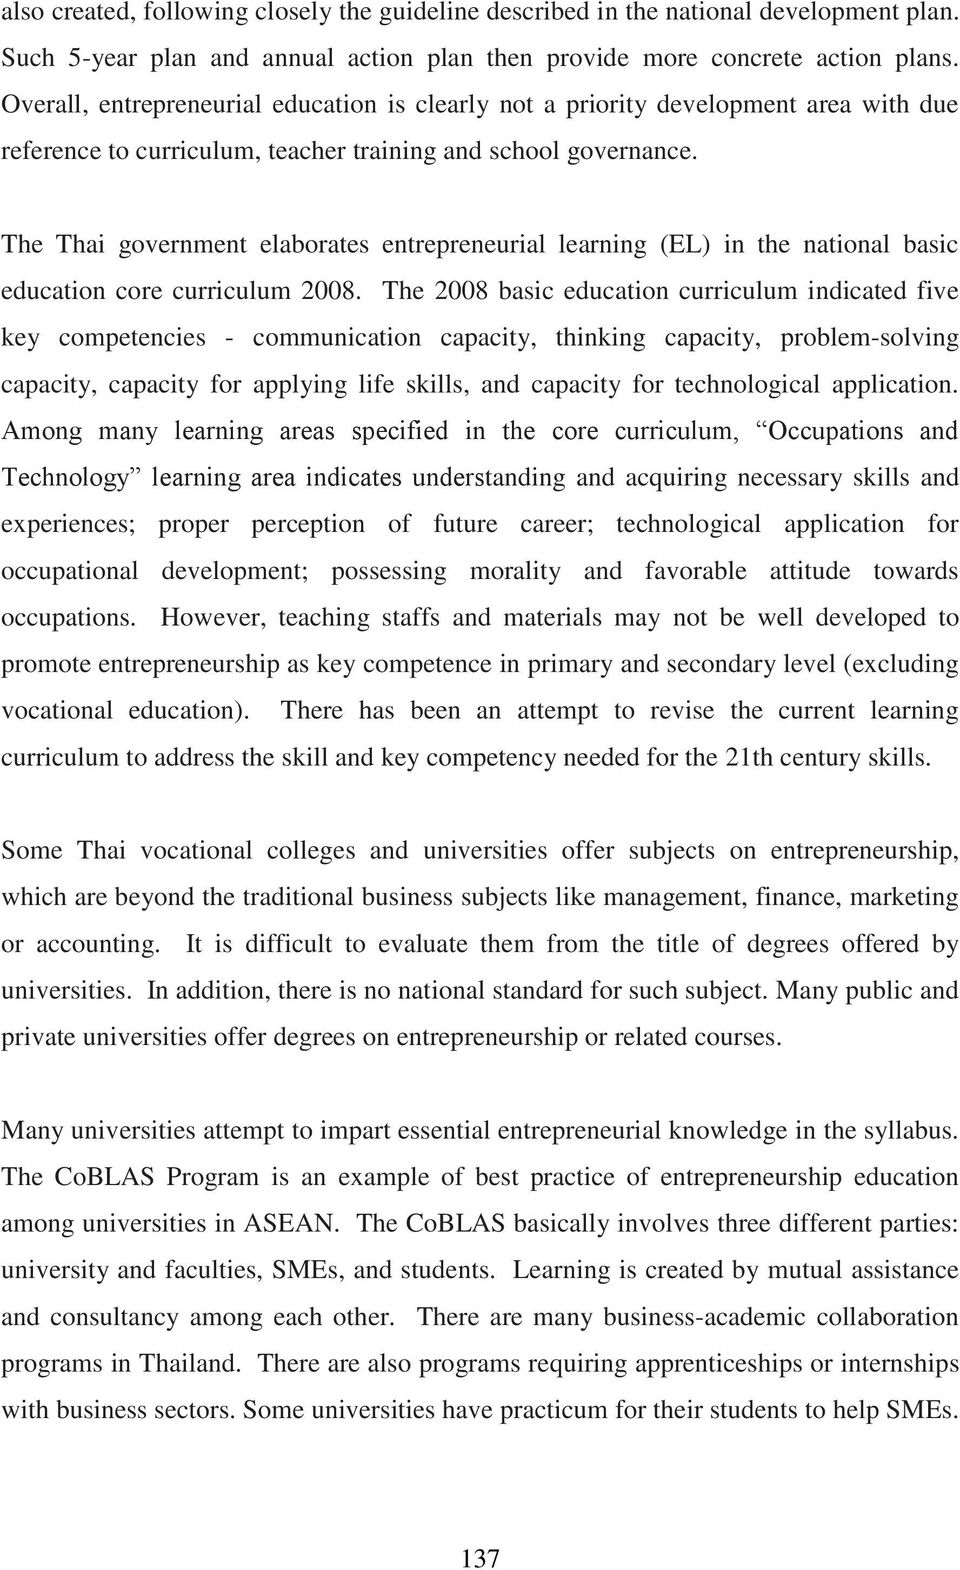 The Thai government elaborates entrepreneurial learning (EL) in the national basic education core curriculum 2008.